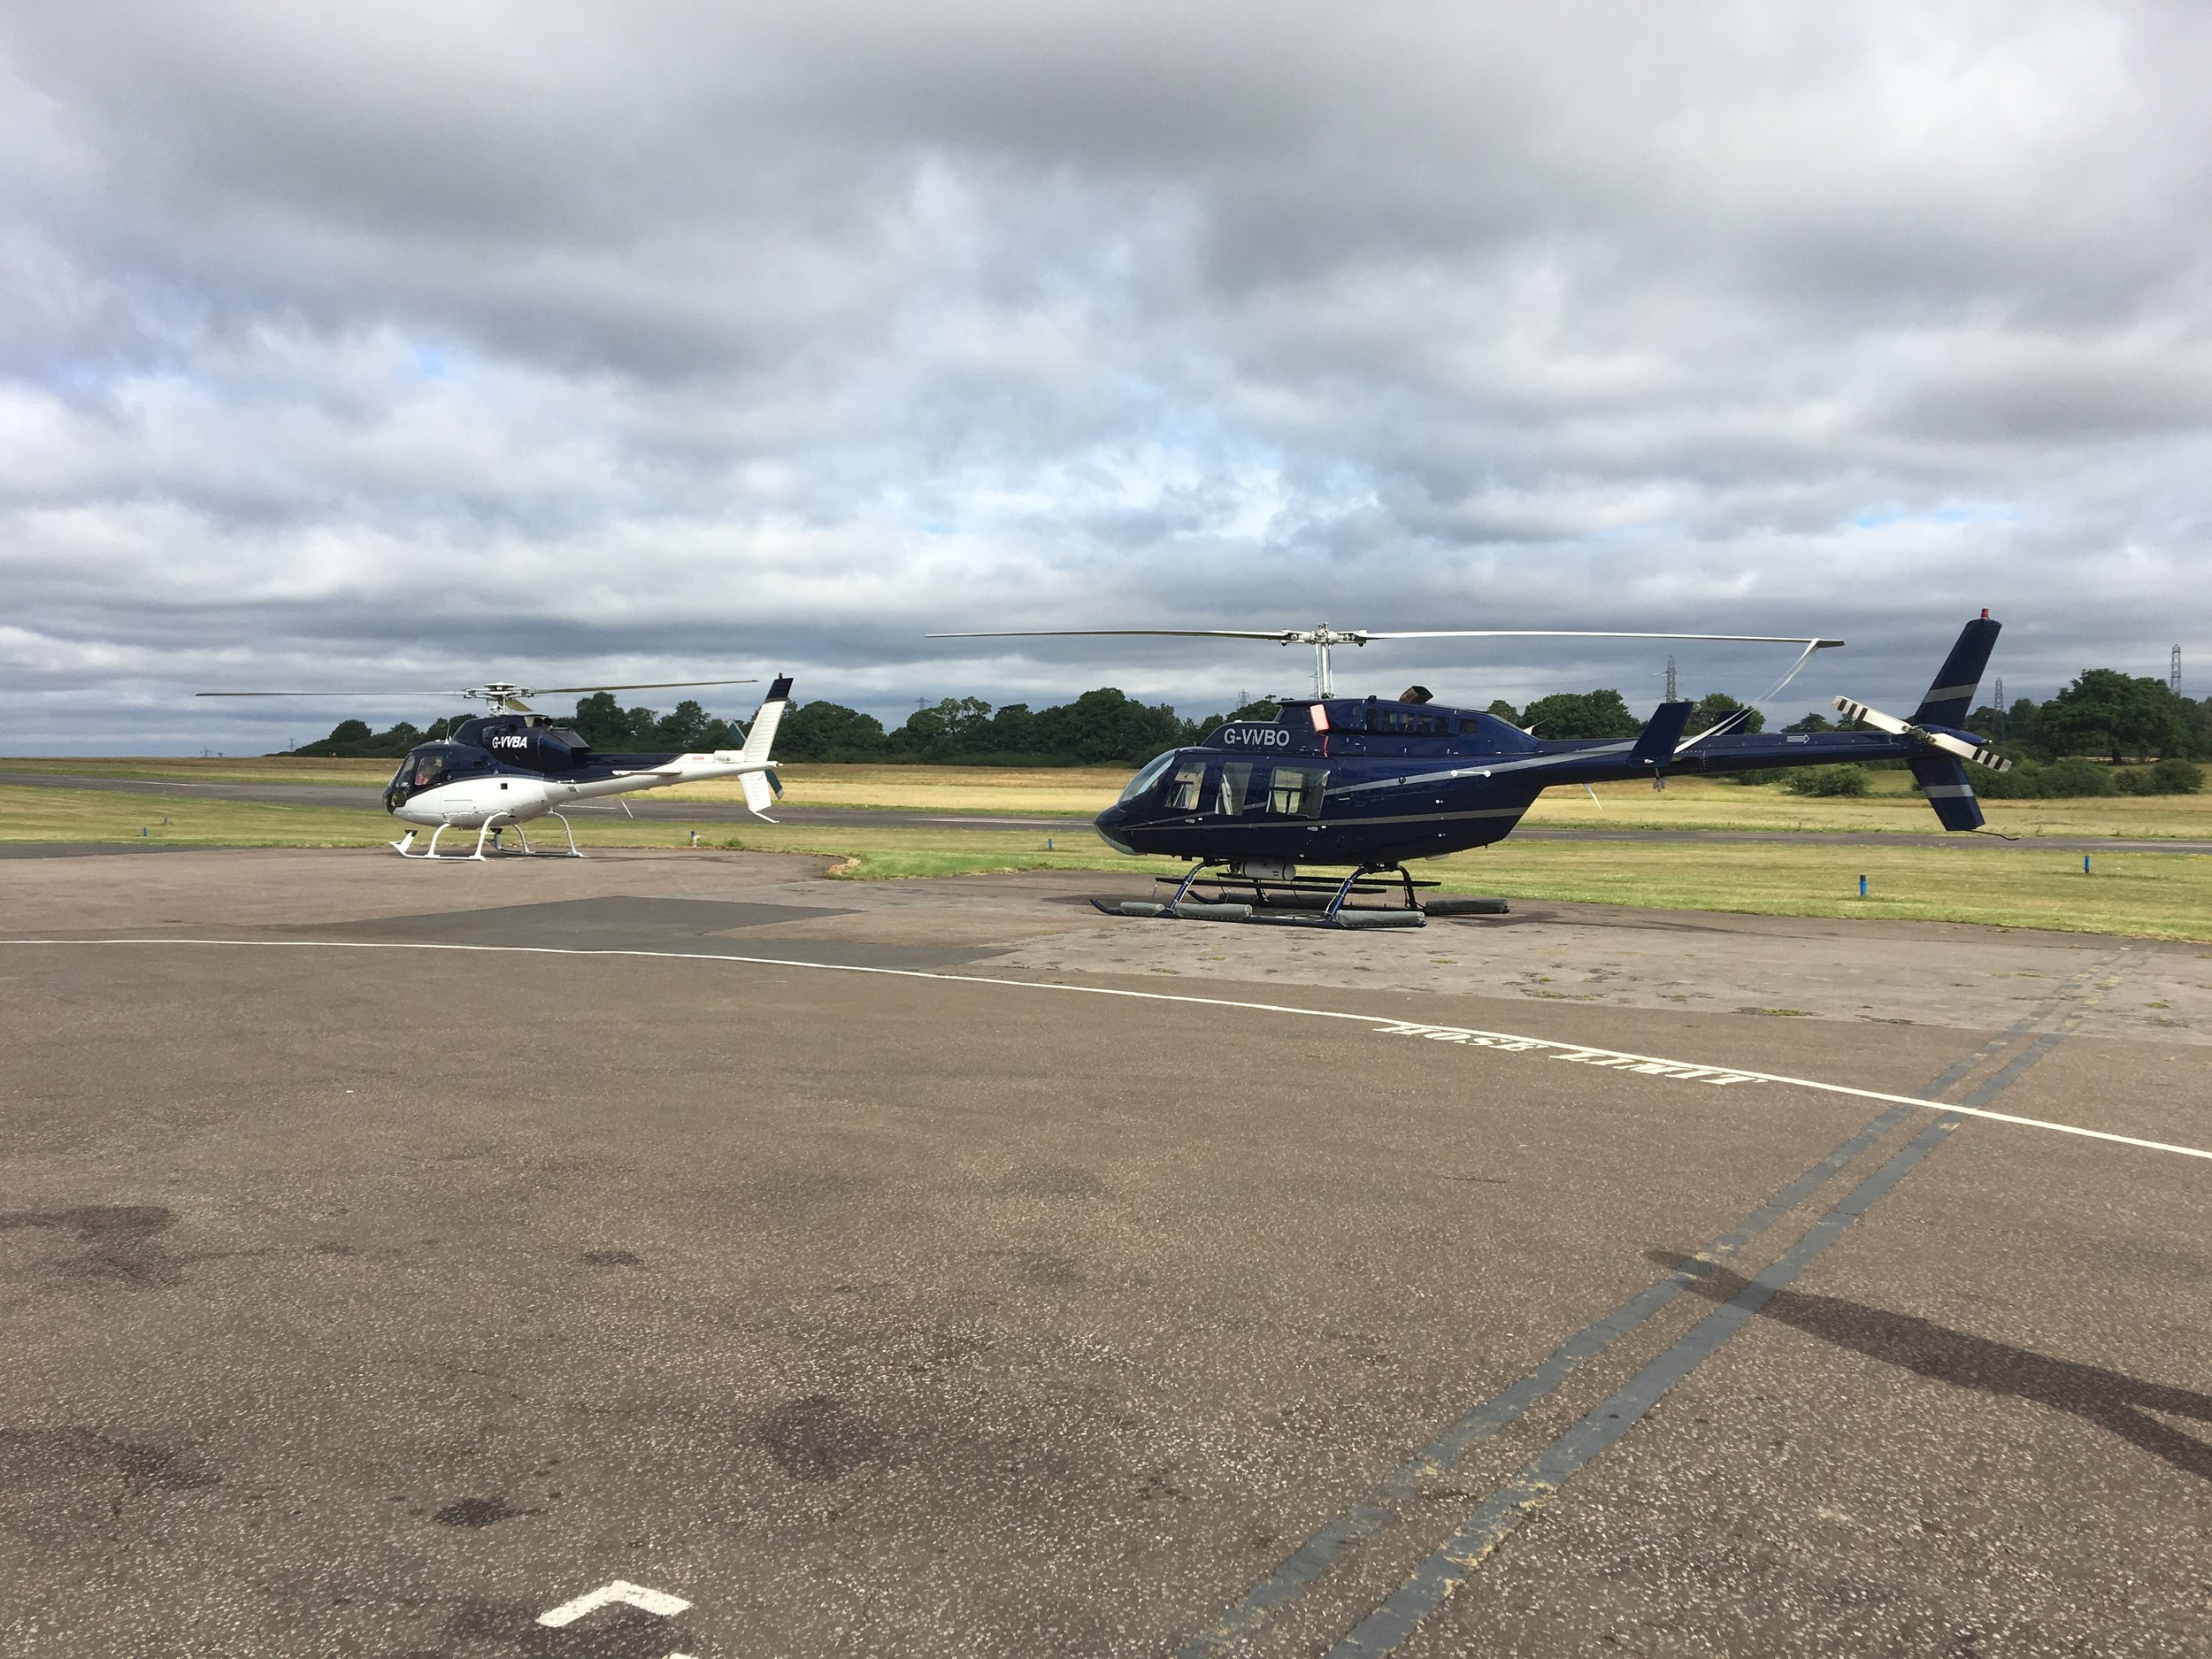 Helicopters parked on helipad at London Elstree Aerodrome Airport